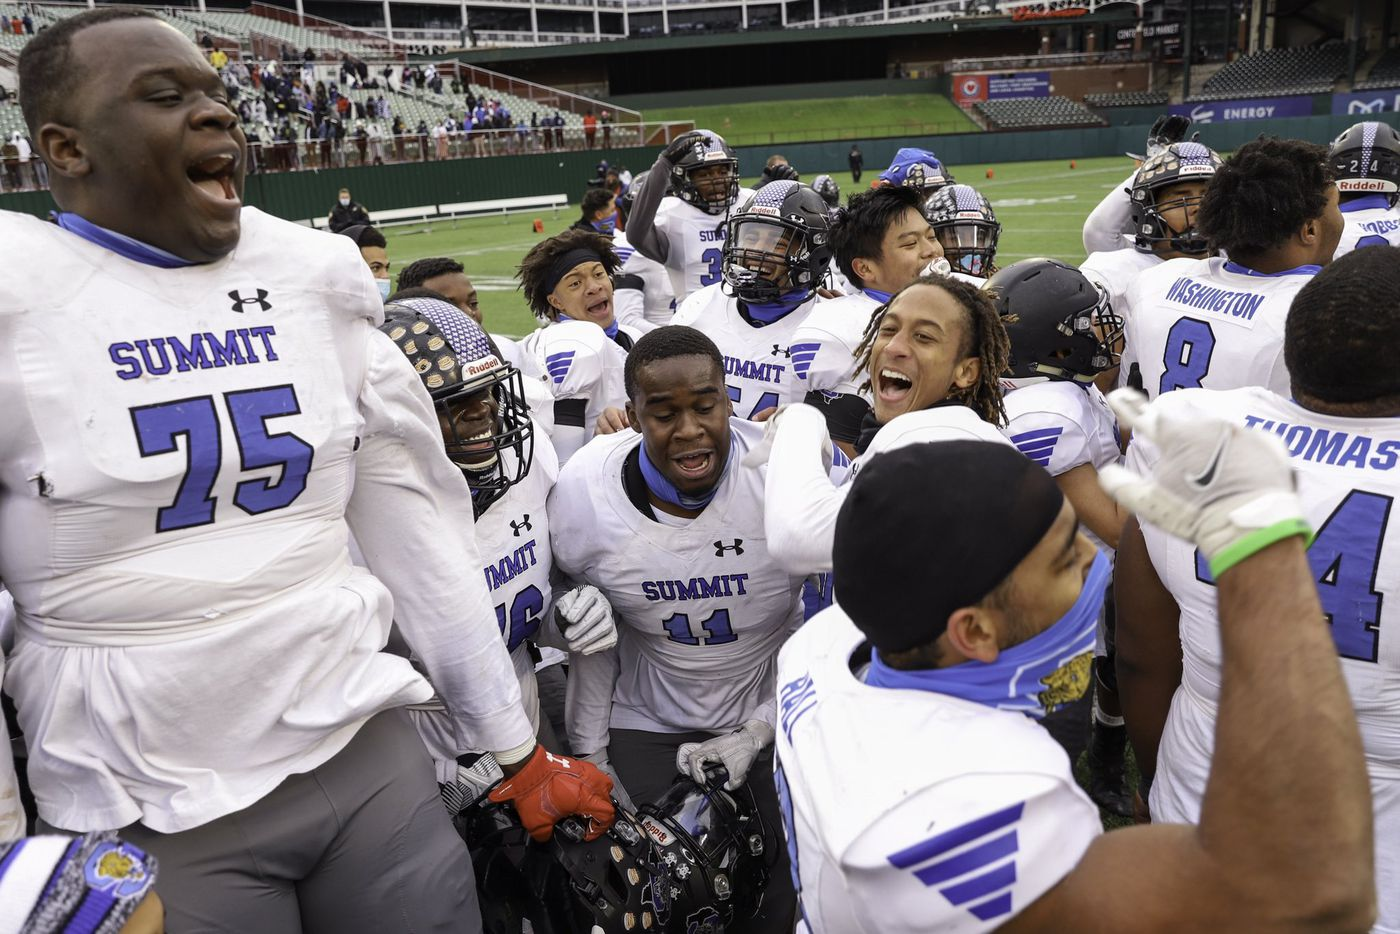 Mansfield Summit players celebrate after their Class 5A Division I Region I final win over Red Oak at Globe Life Park in Arlington, Texas, Friday, Jan. 1, 2021.